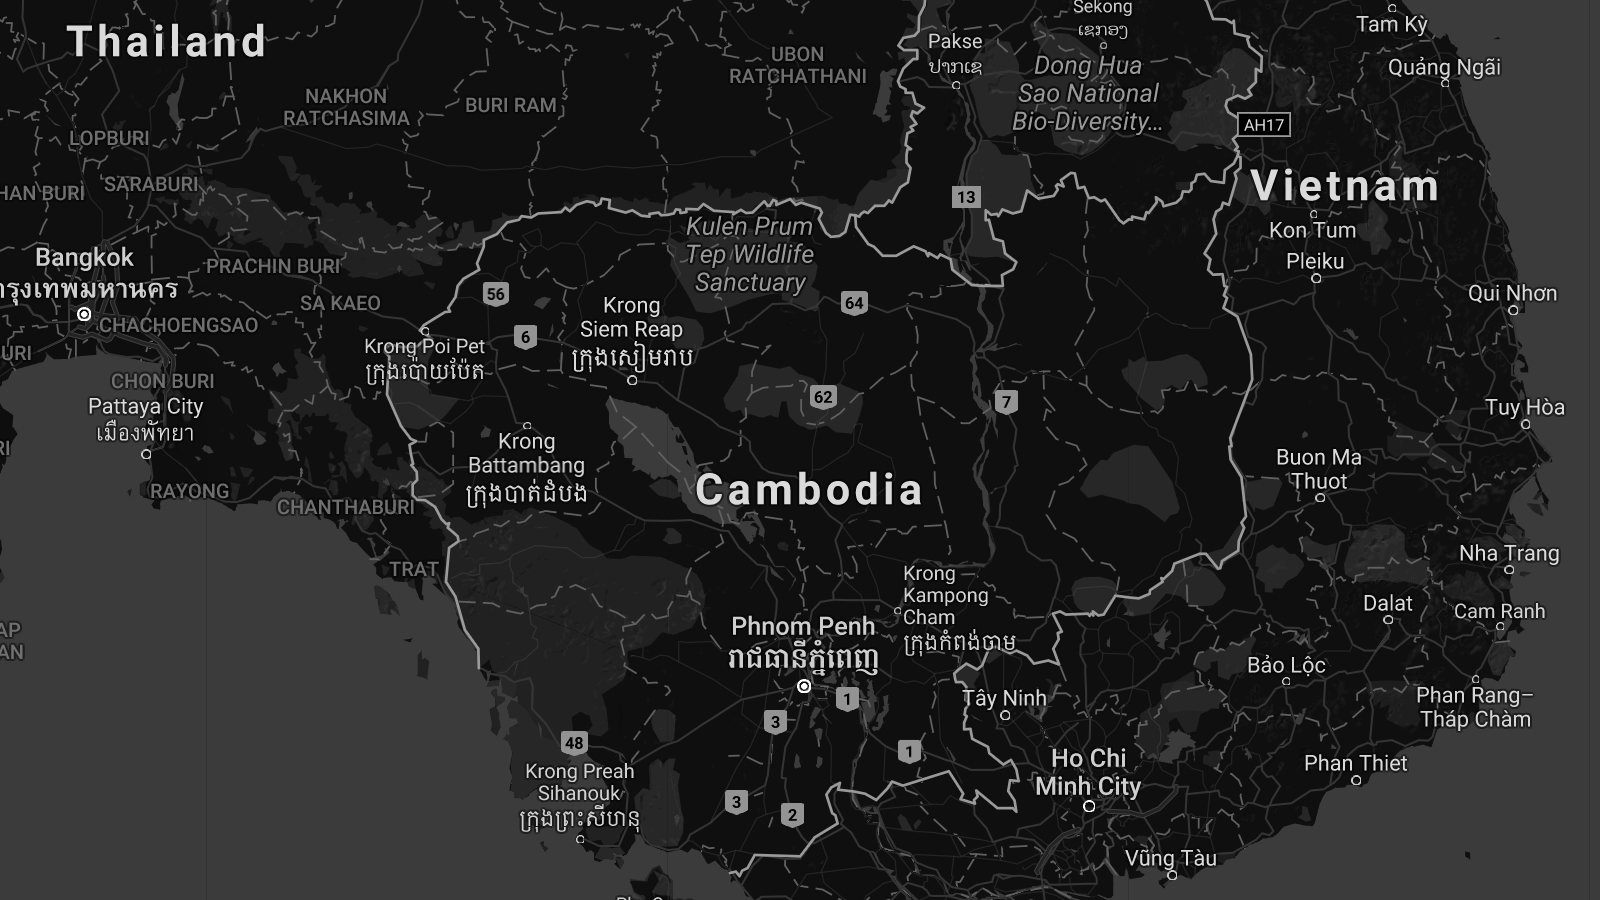 We are planning an exploratory trip to Cambodia to determine if this is the right area for us to begin working in. If God aligns the right opportunities, location,and partnerships for us, we will begin the process of developing a school campus to bring hope through education to the unreached people groups of Cambodia.